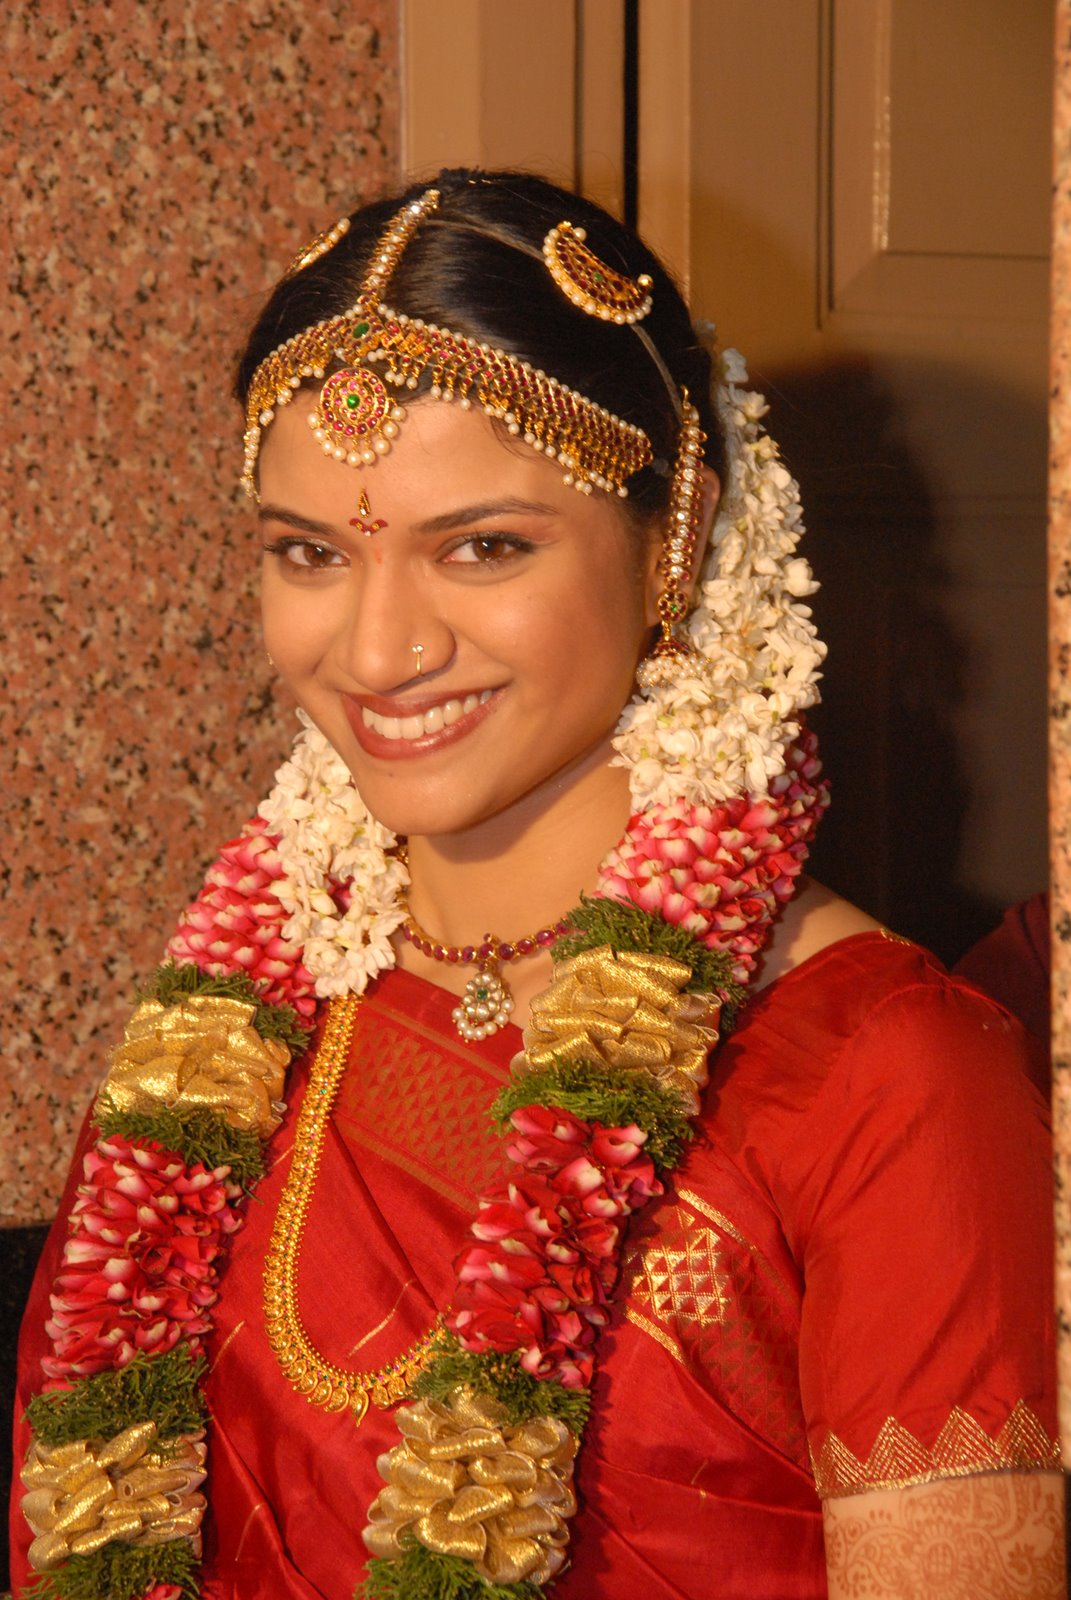 Fashion world: South indian bridal hair style